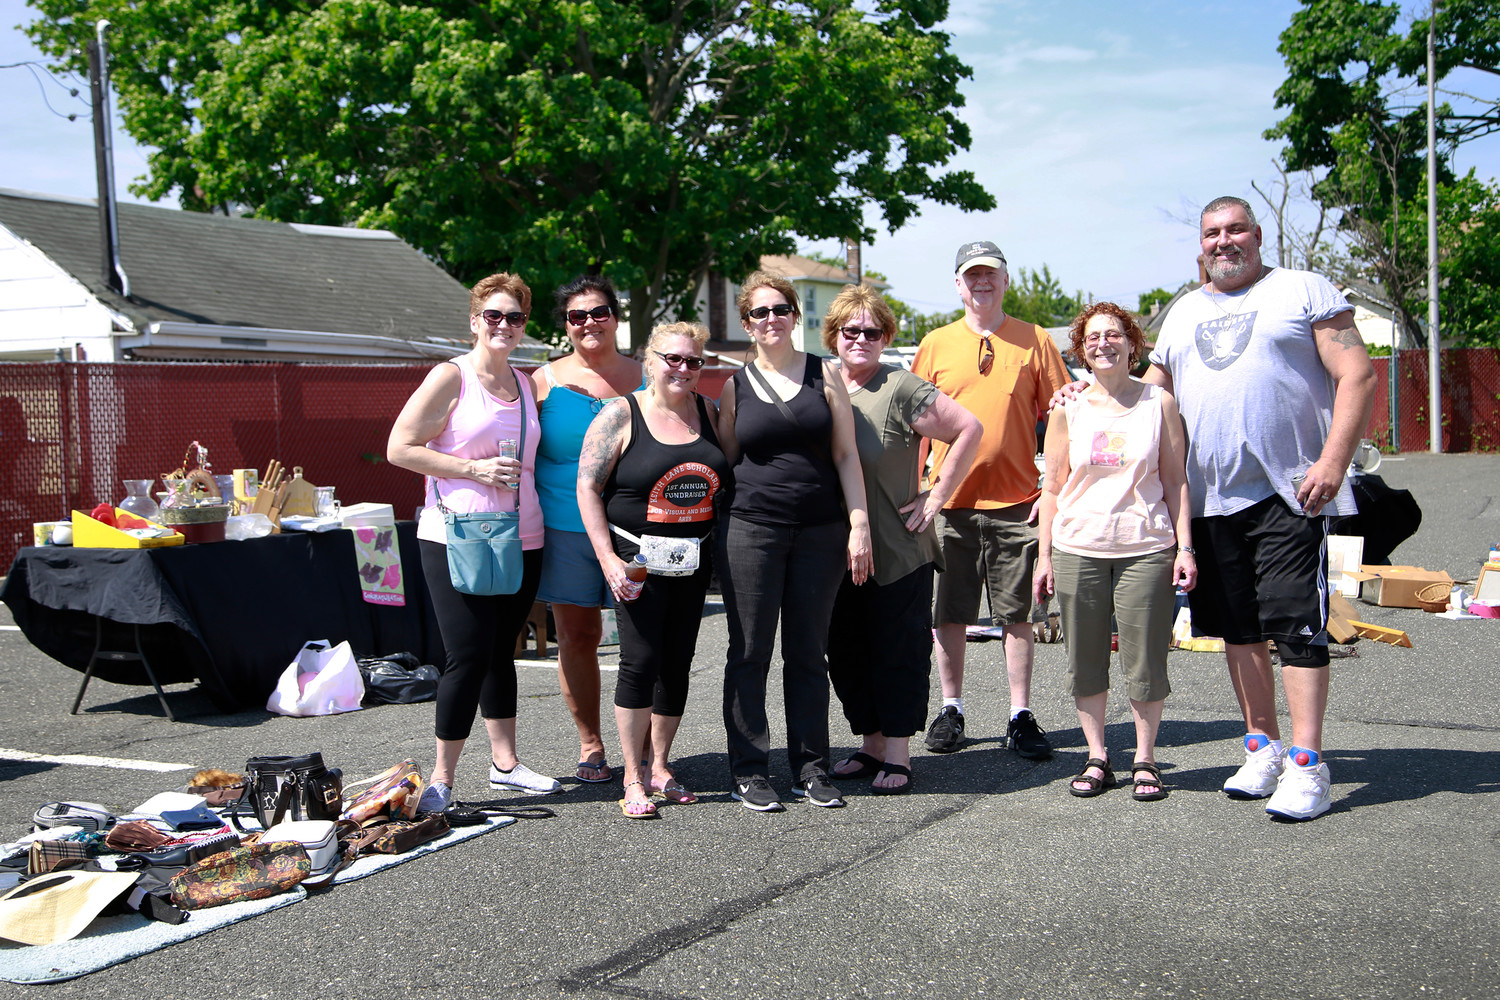 Stacy Lane-Navarra, third from left, organized the second annual fundraiser to benefit a scholarship in memory of her late brother, Keith Lane. Above, Lane-Navarra with Angie Seaman, far left, Maryann Briones, Laura Freedman, Trish Appello, Rick Newel, Leslie Newel and Pete Navarra.